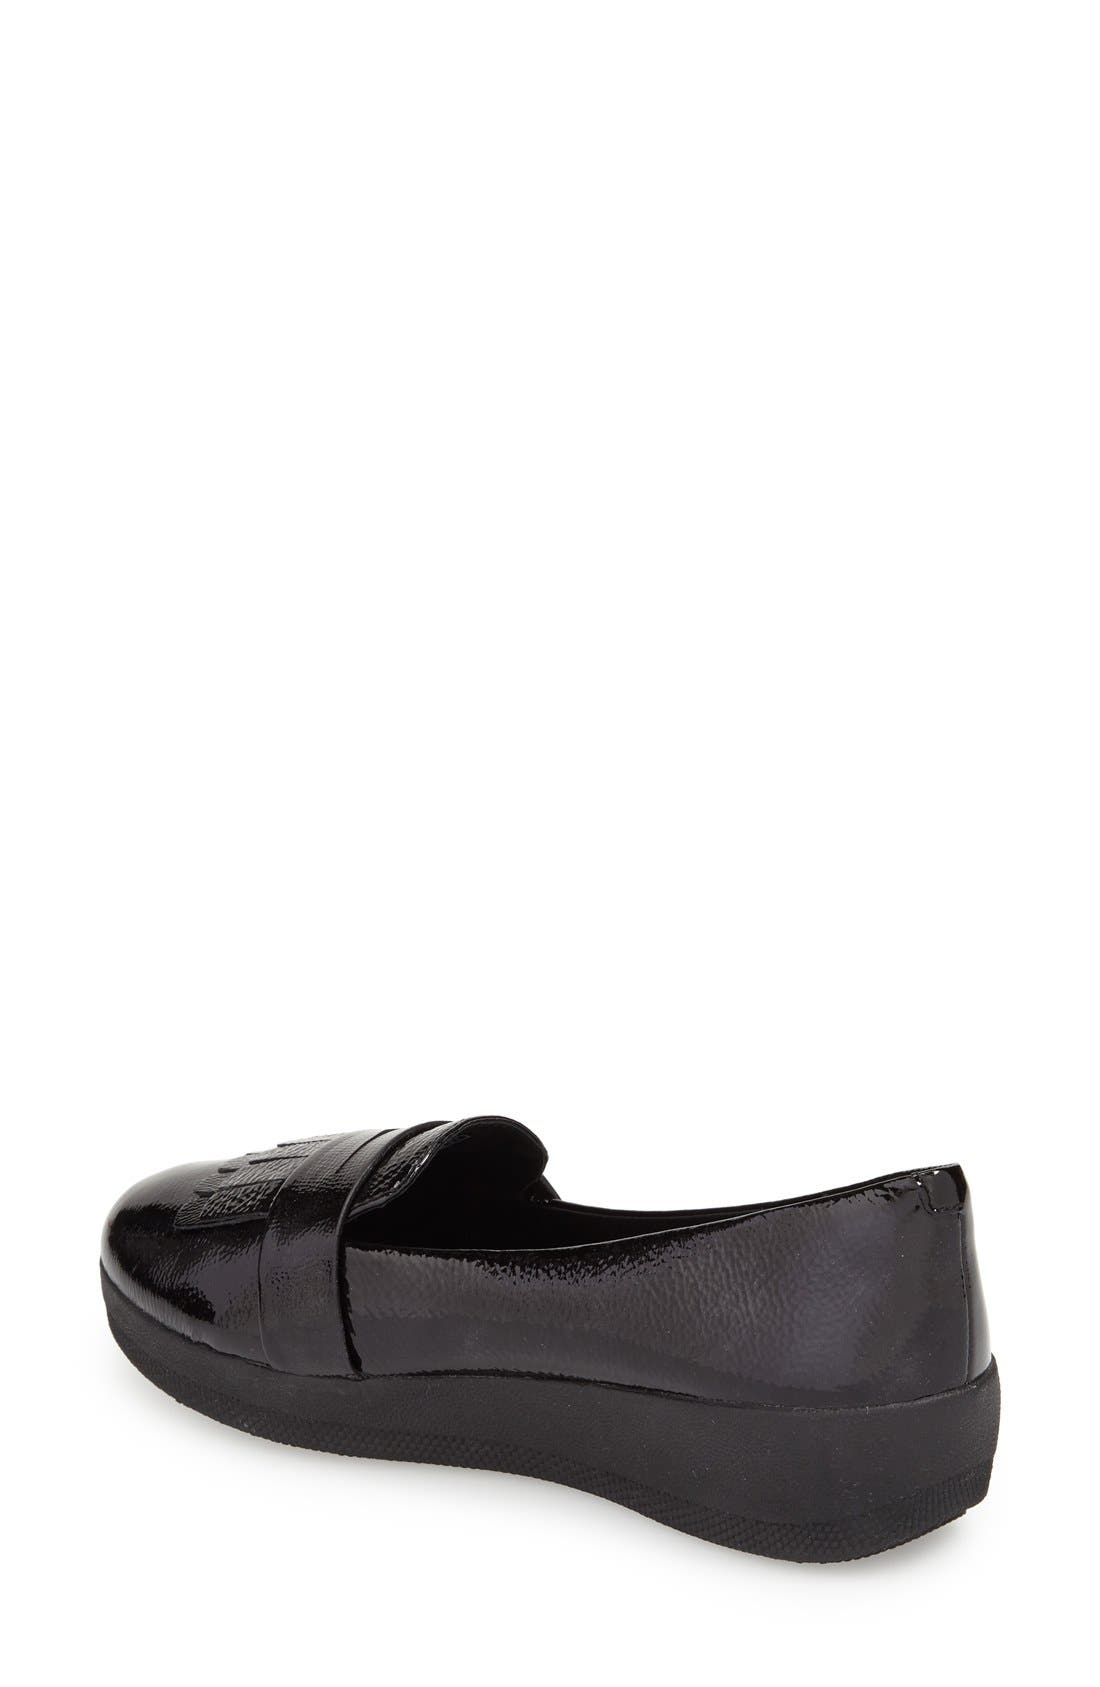 Fringey Loafer,                             Alternate thumbnail 11, color,